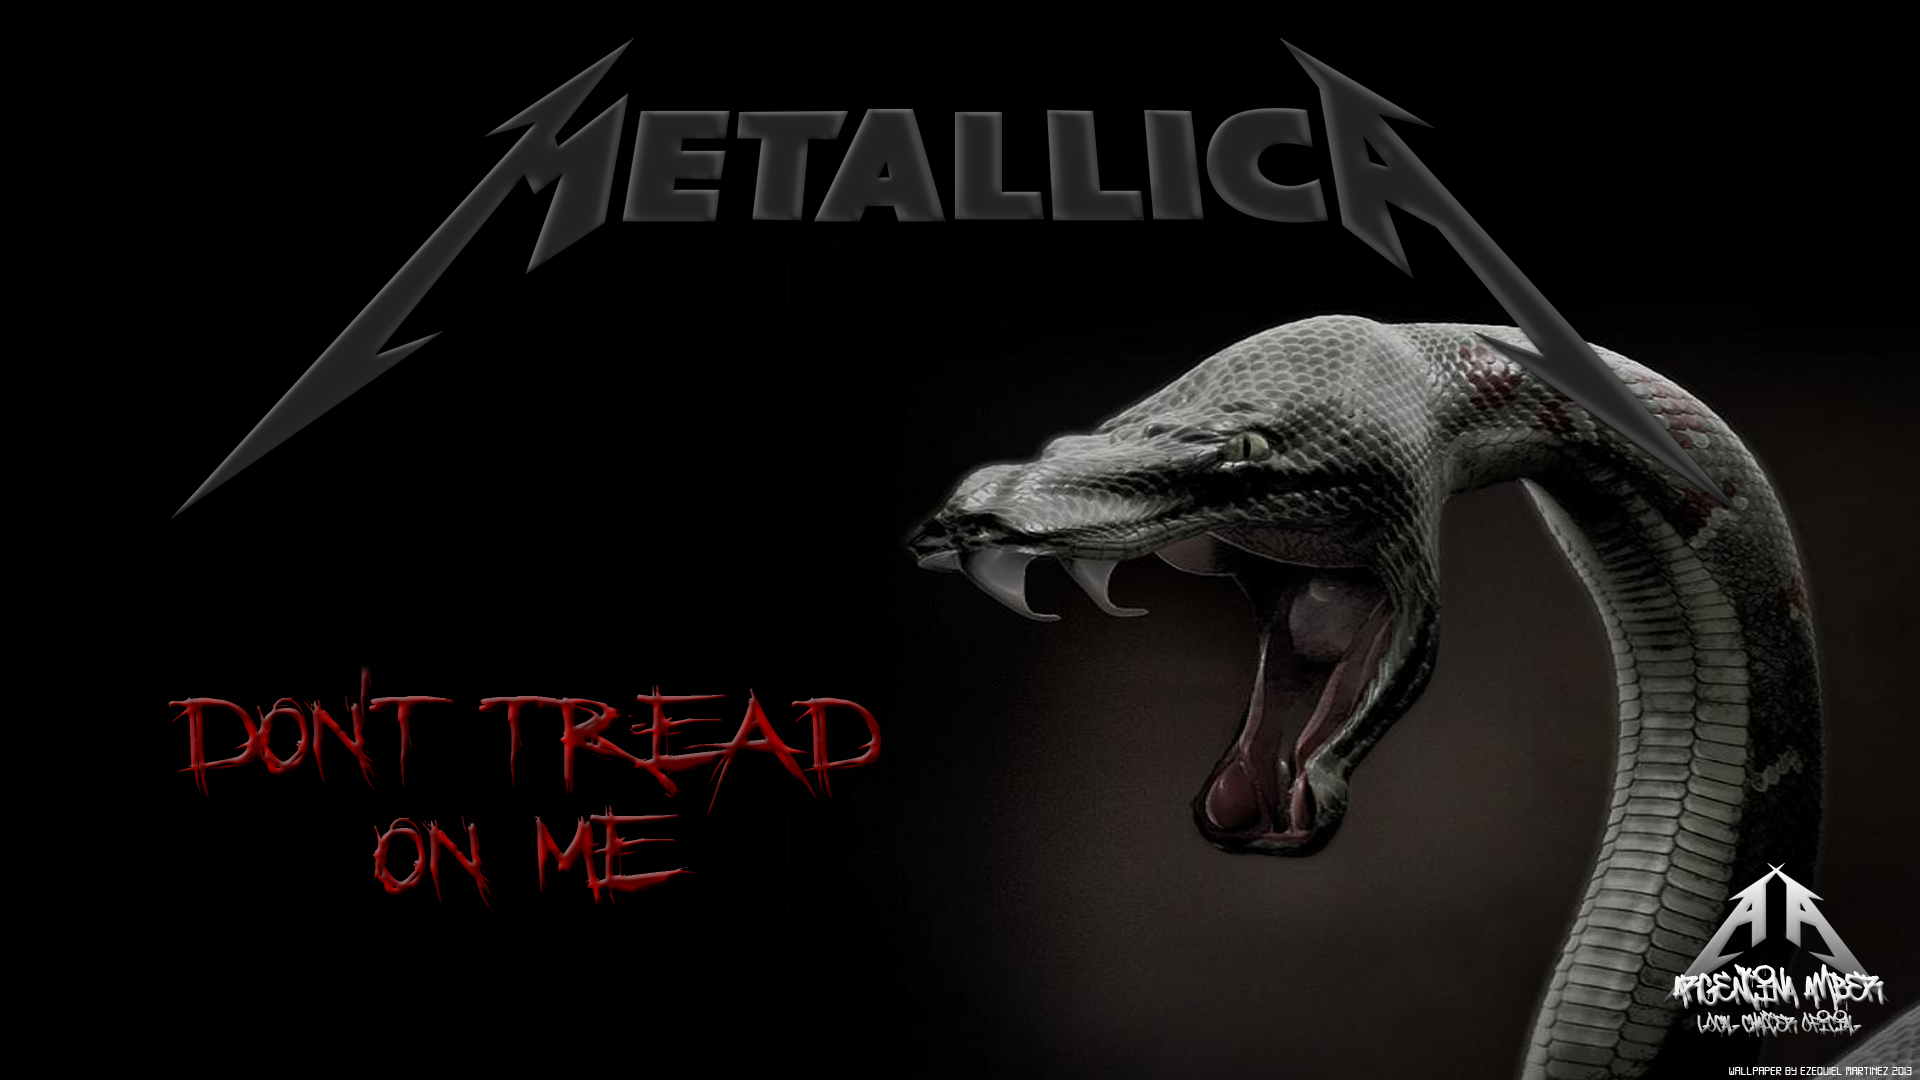 Metallica Wallpapers High Definition Profile Wallpaper Snake Wallpaper Animal Wallpaper Dark Wallpaper